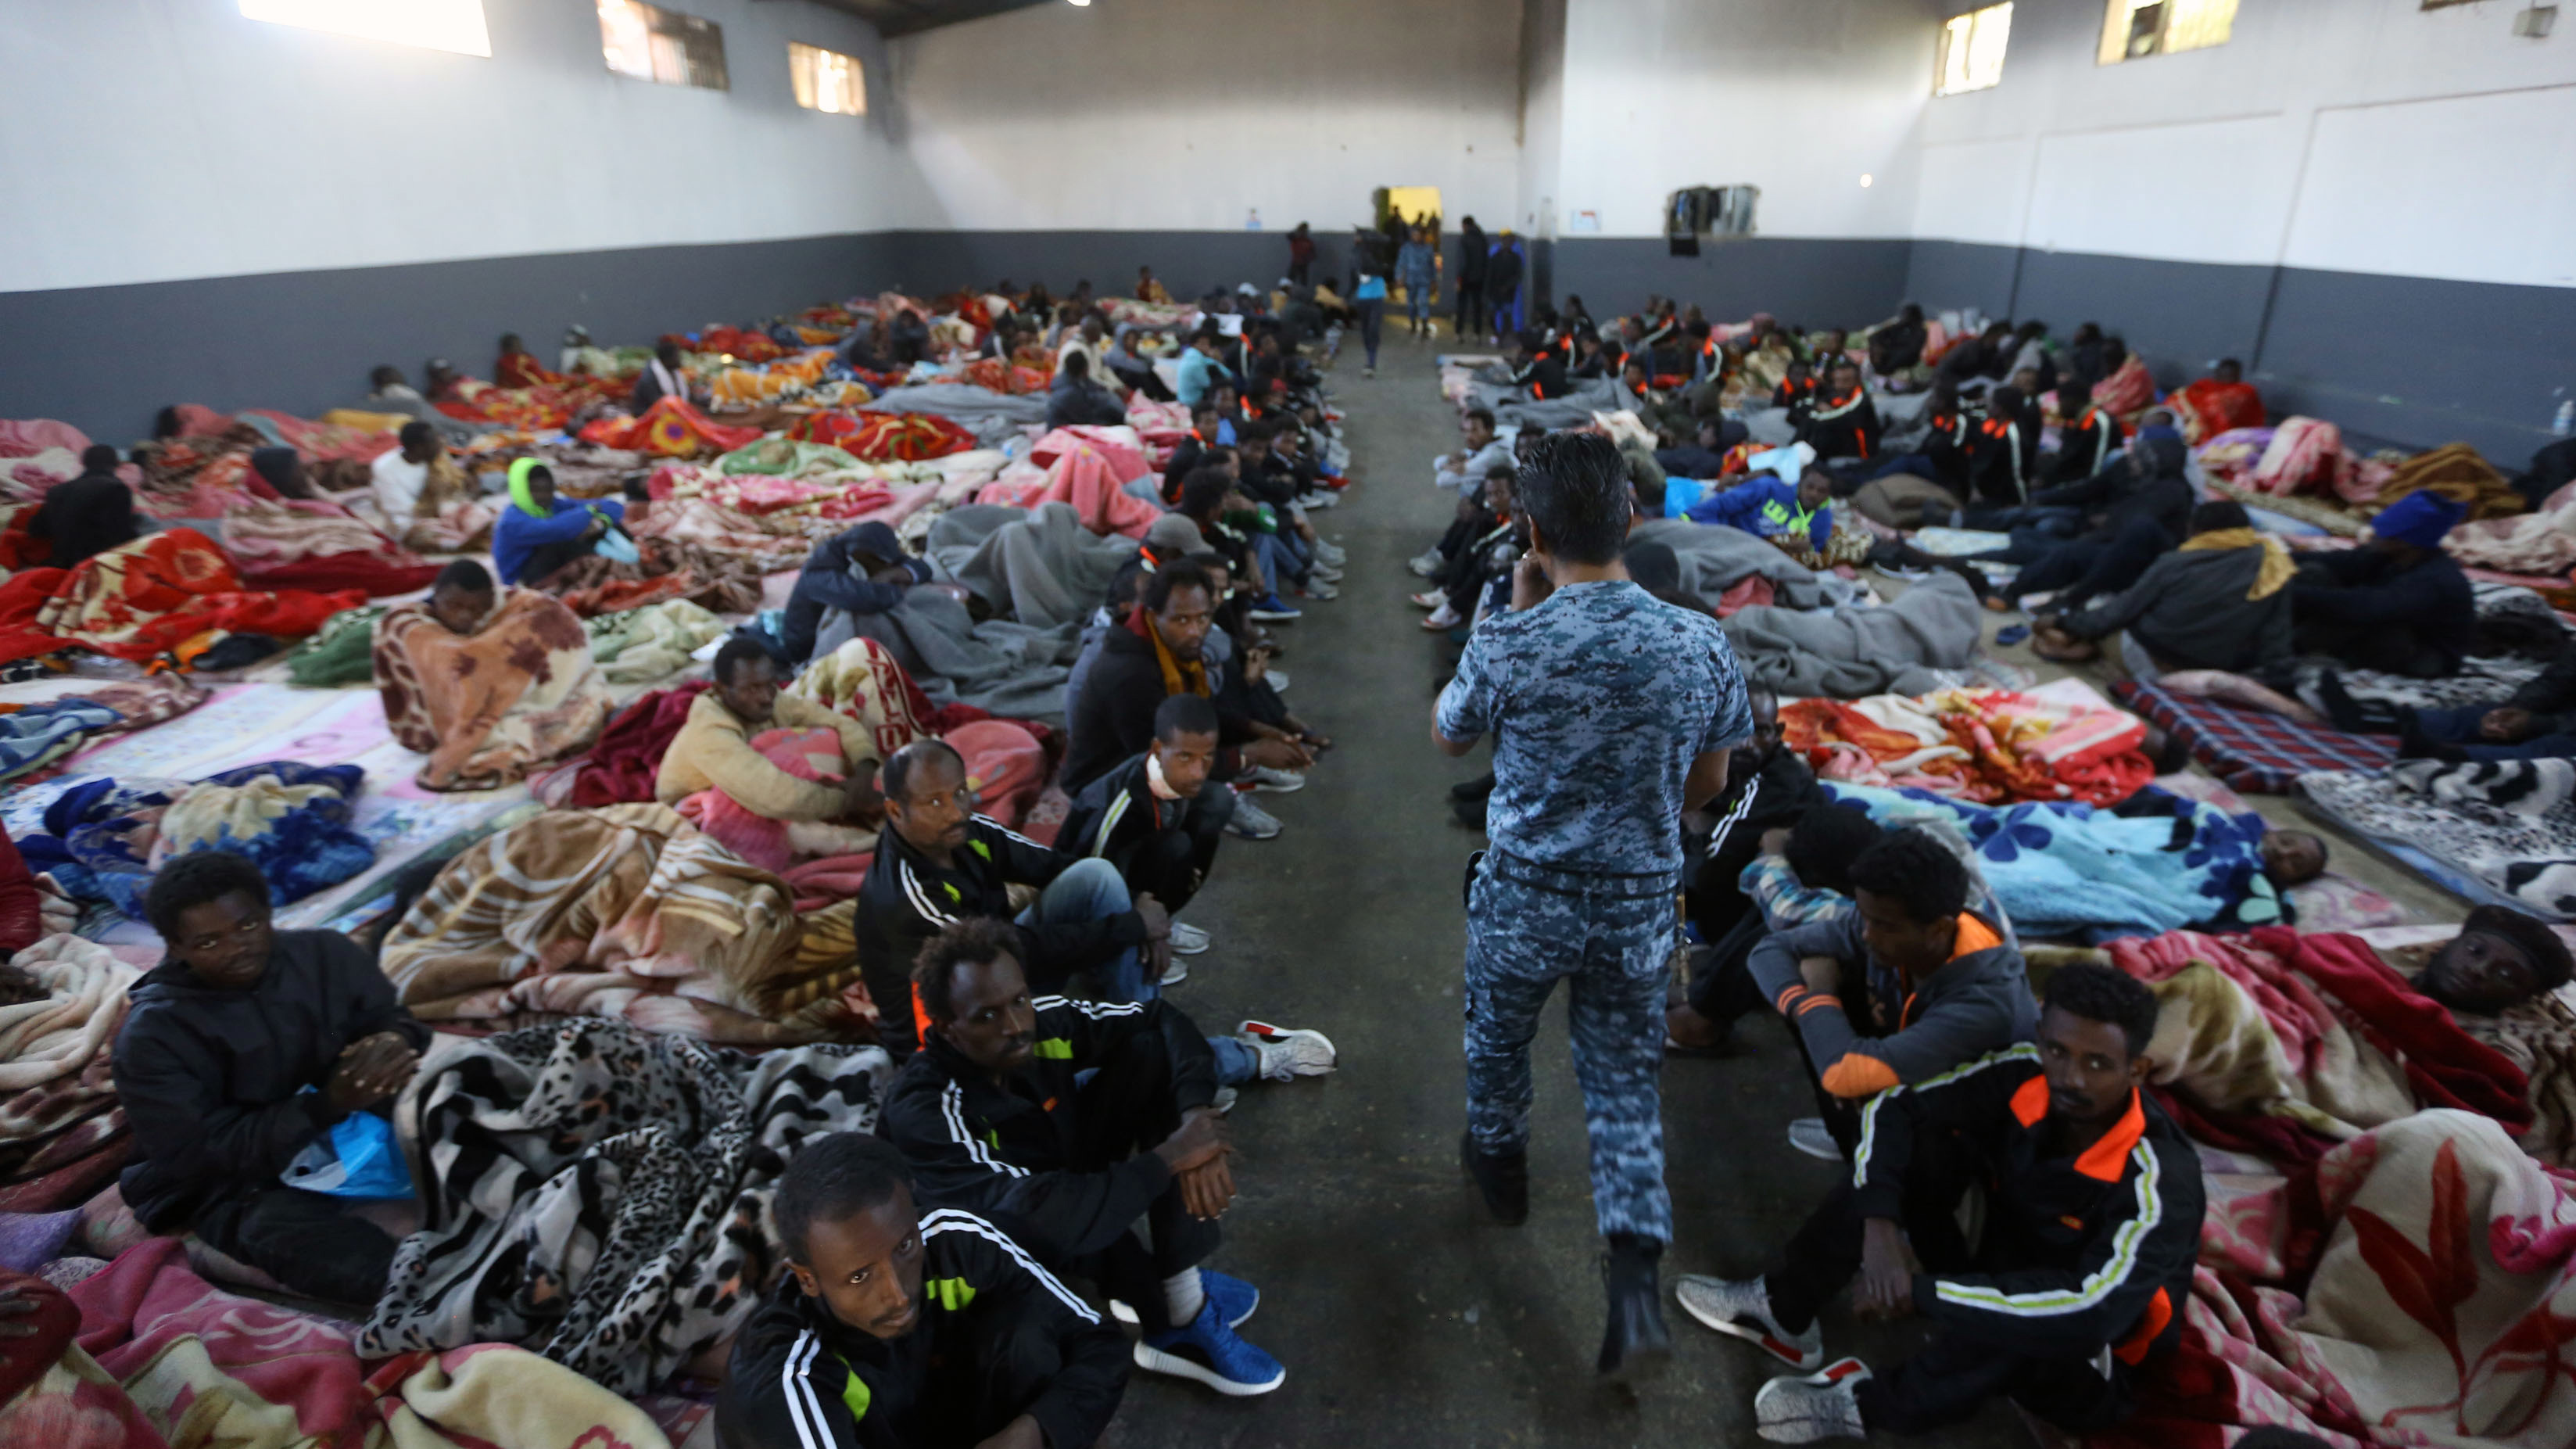 Is the European Union complicit in refugee abuse in Libya?